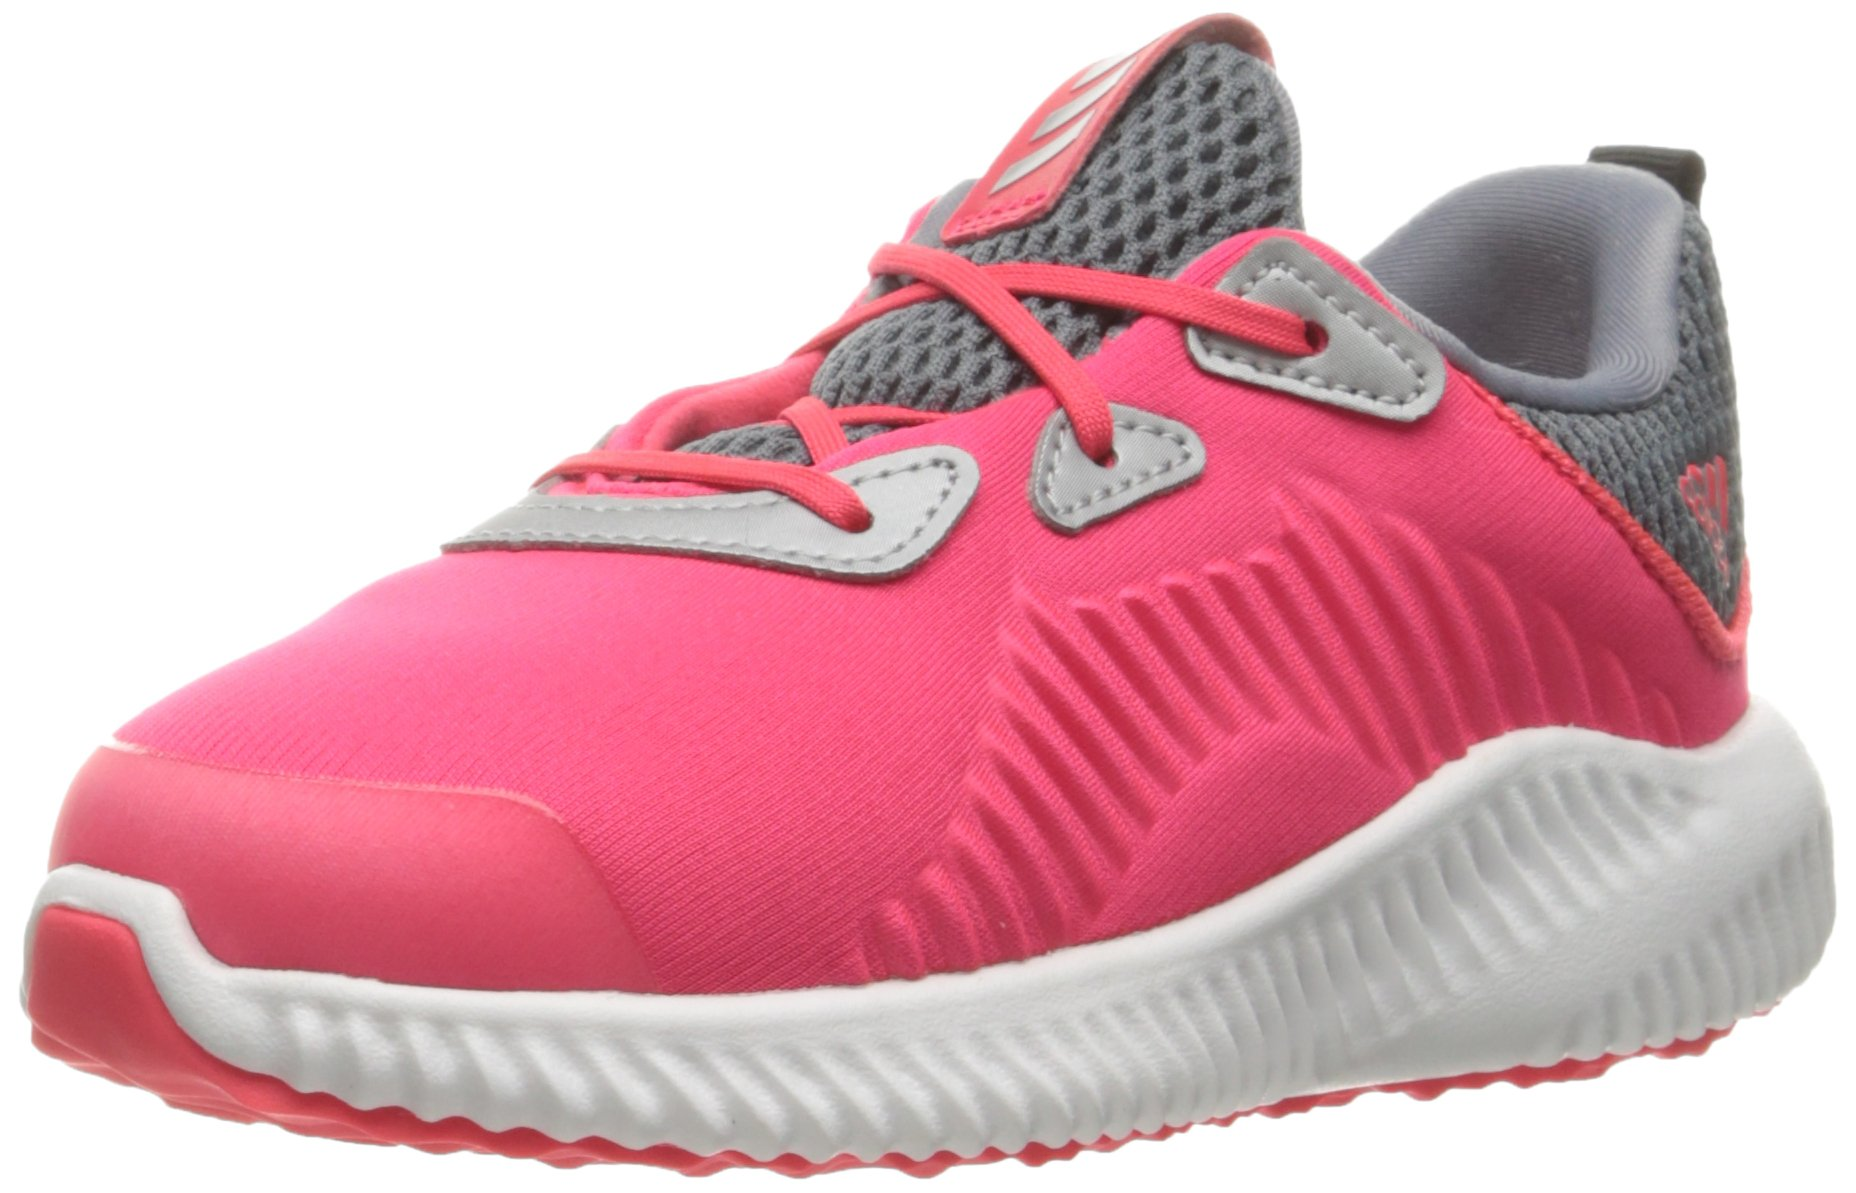 adidas Kids' Alphabounce Sneaker, Shock Red/White/Tech Grey Fabric, 6 M US Infant